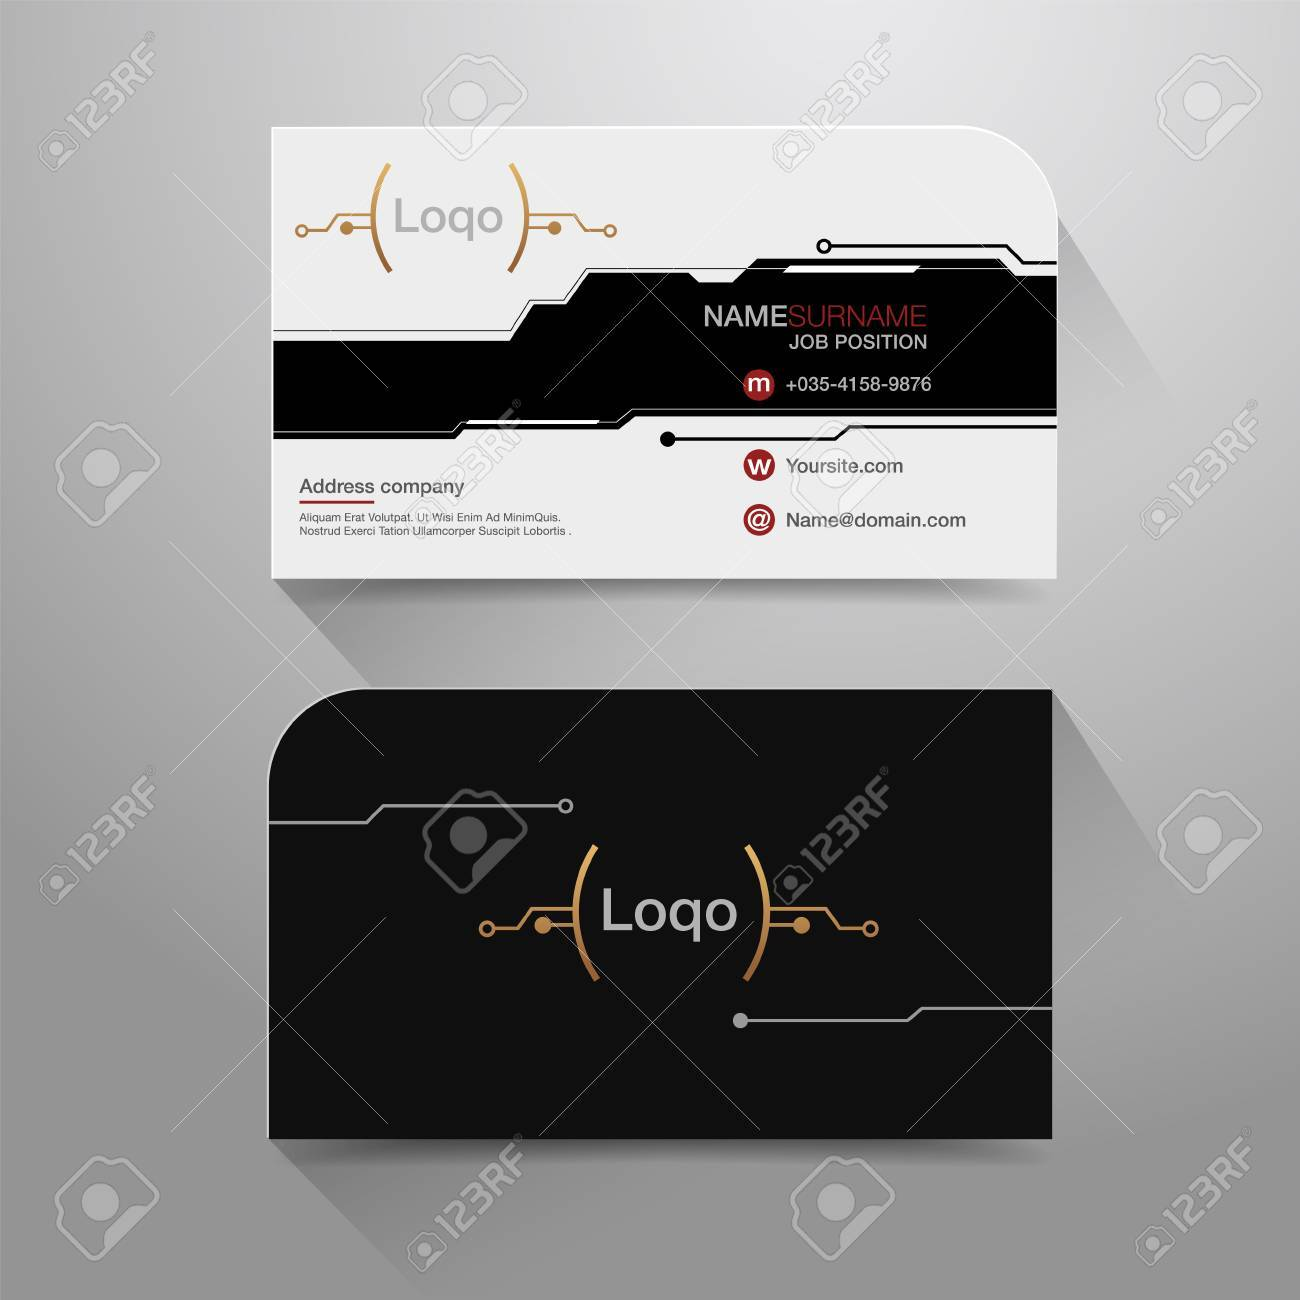 Business Name Card With Modern Digital Design Background. Vector ...